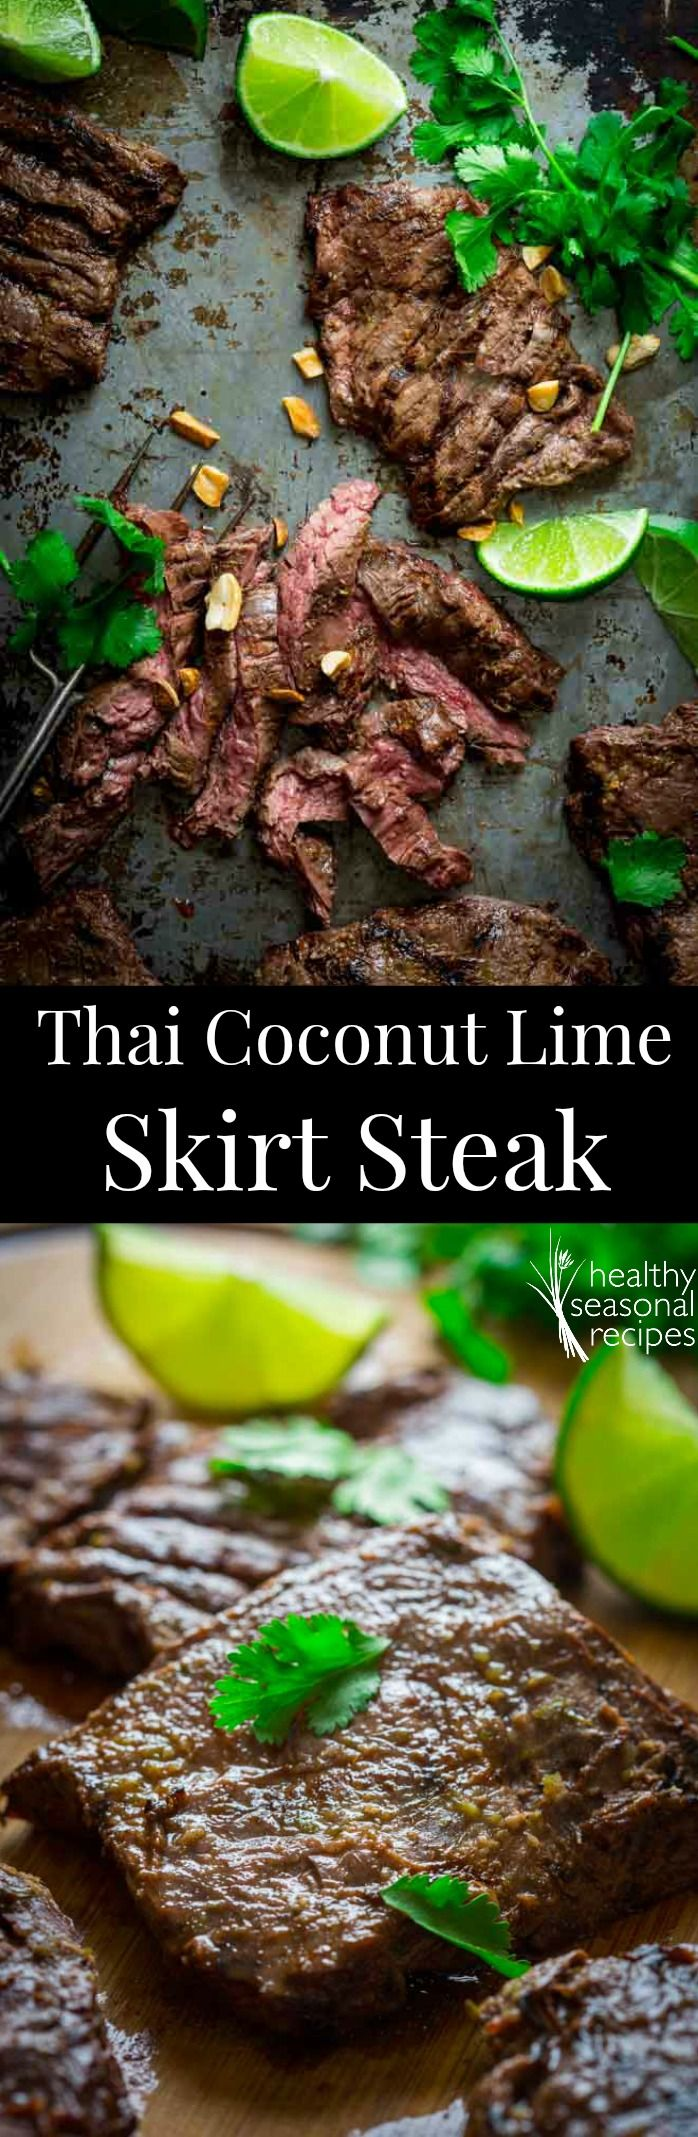 grilled thai coconut lime skirt steak - Healthy Seasonal Recipes